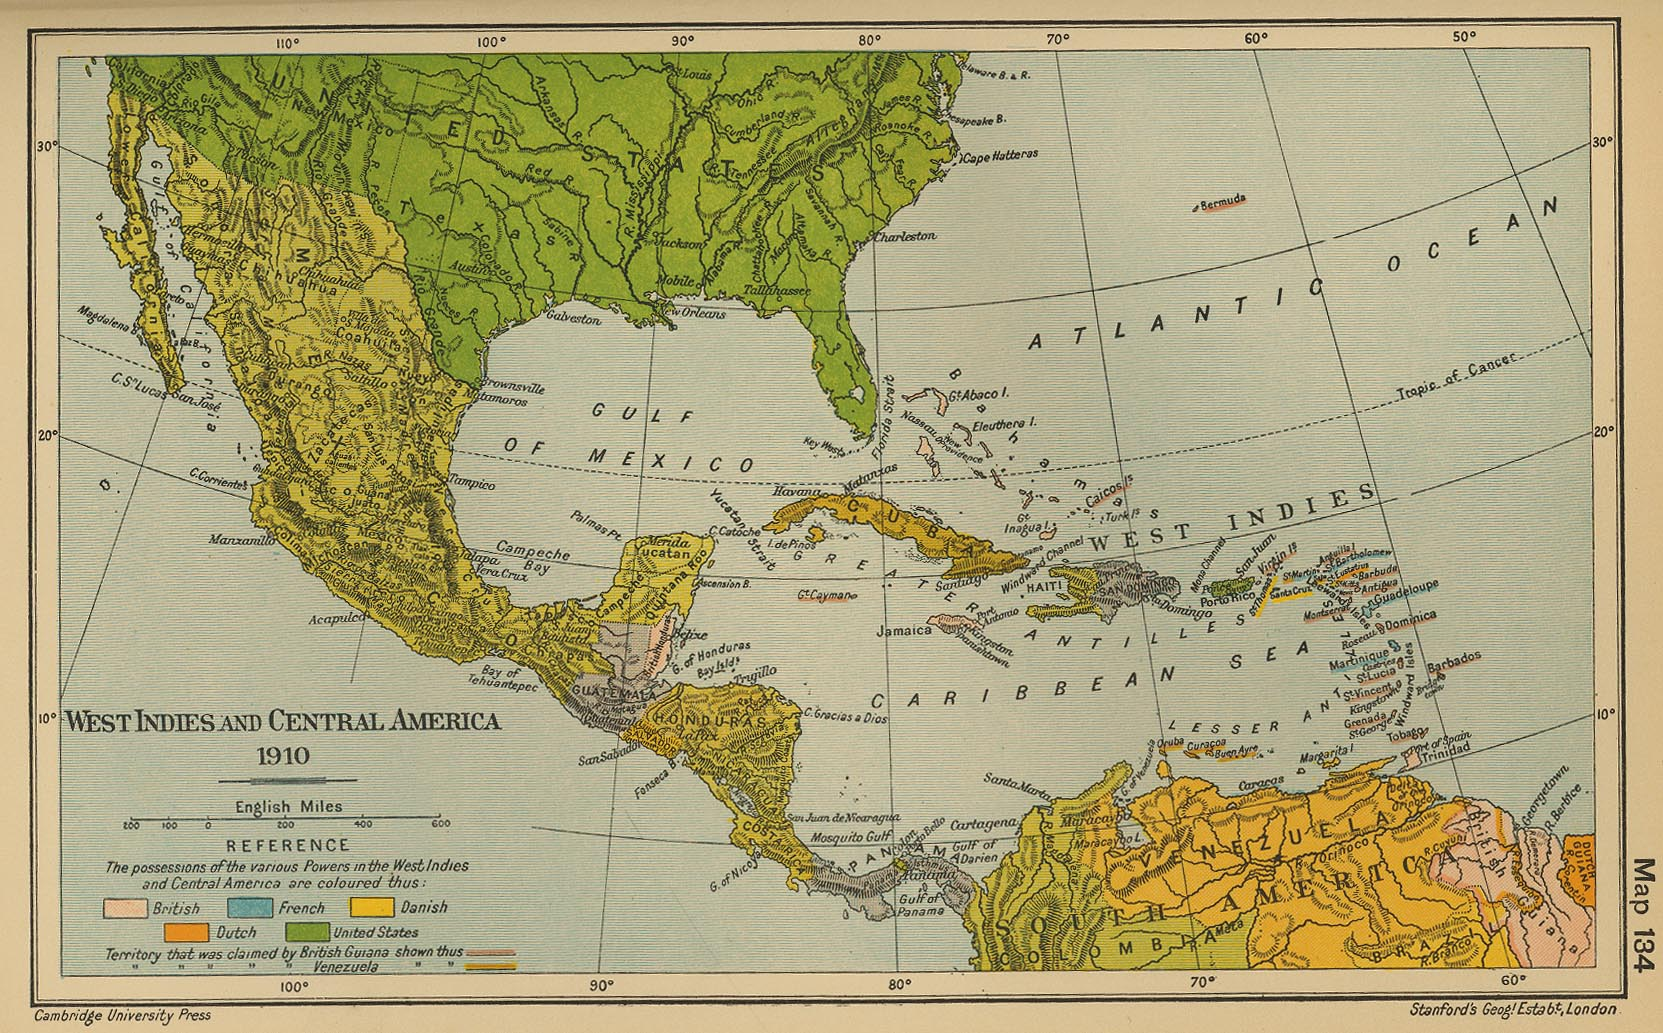 Map of the West Indies and Central America 1910